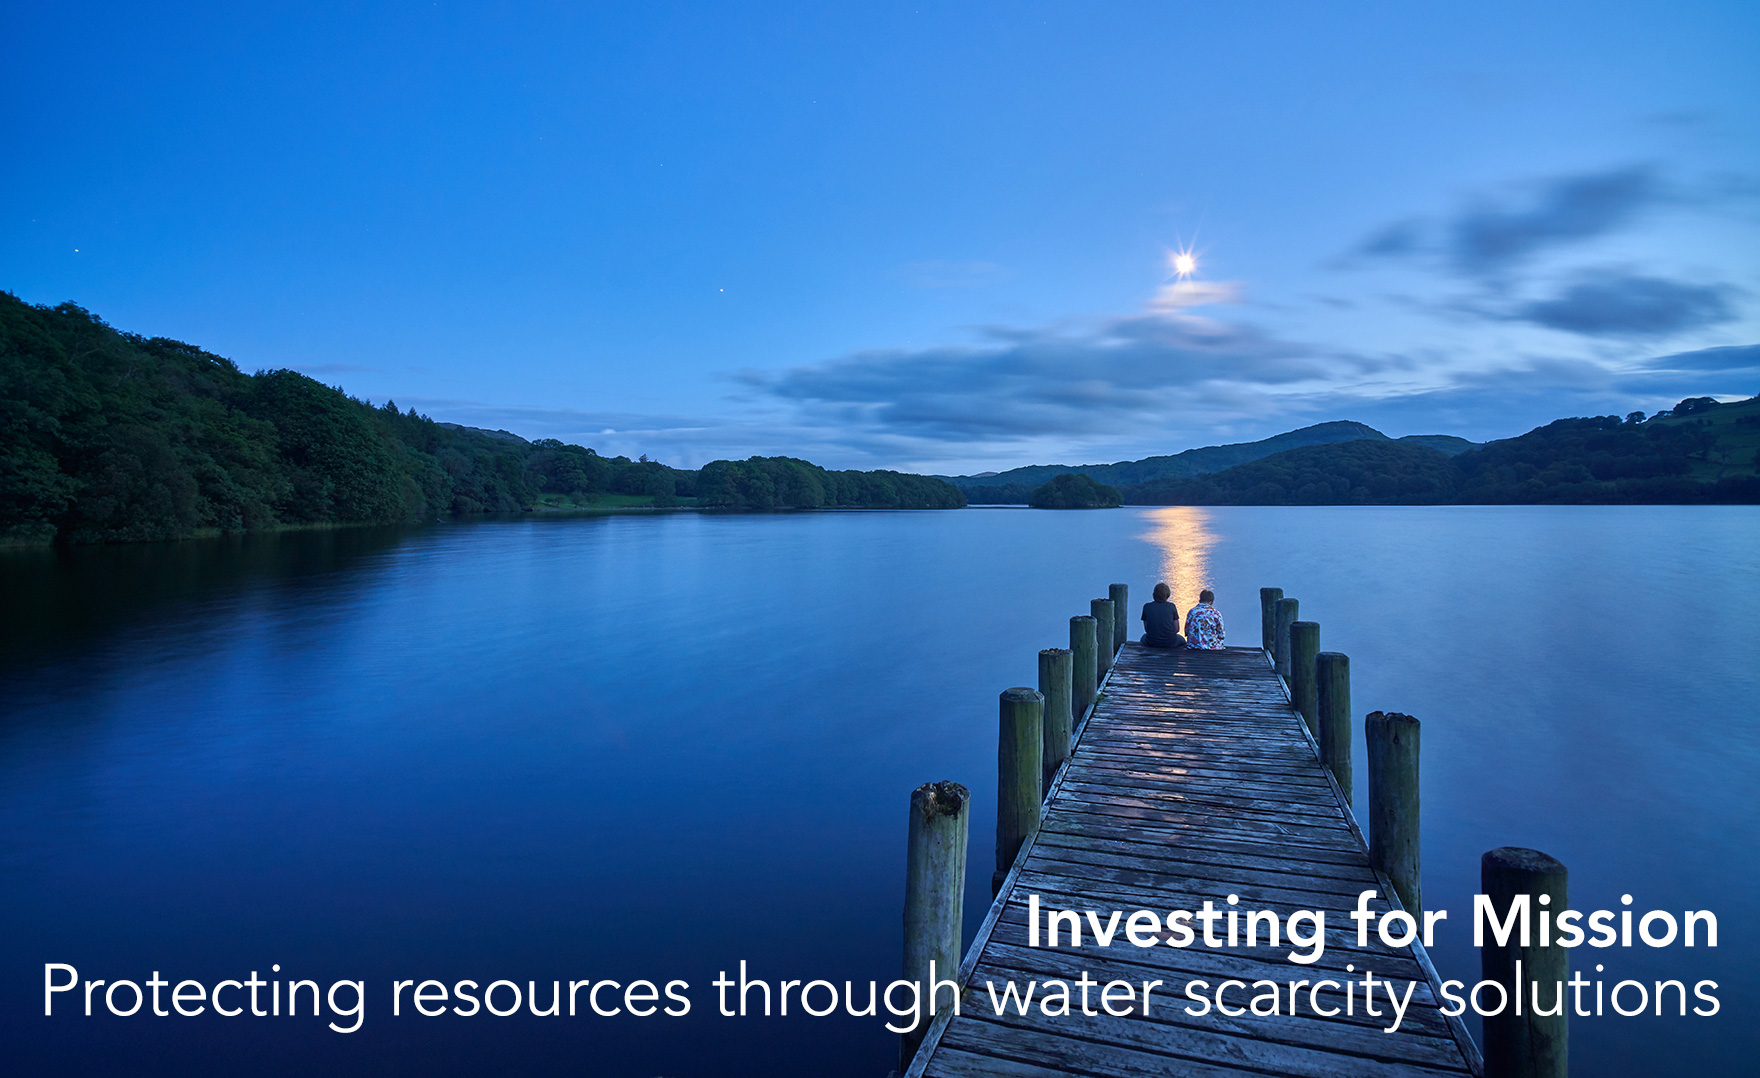 Investing for Mission | Protecting resources through water scarcity solutions